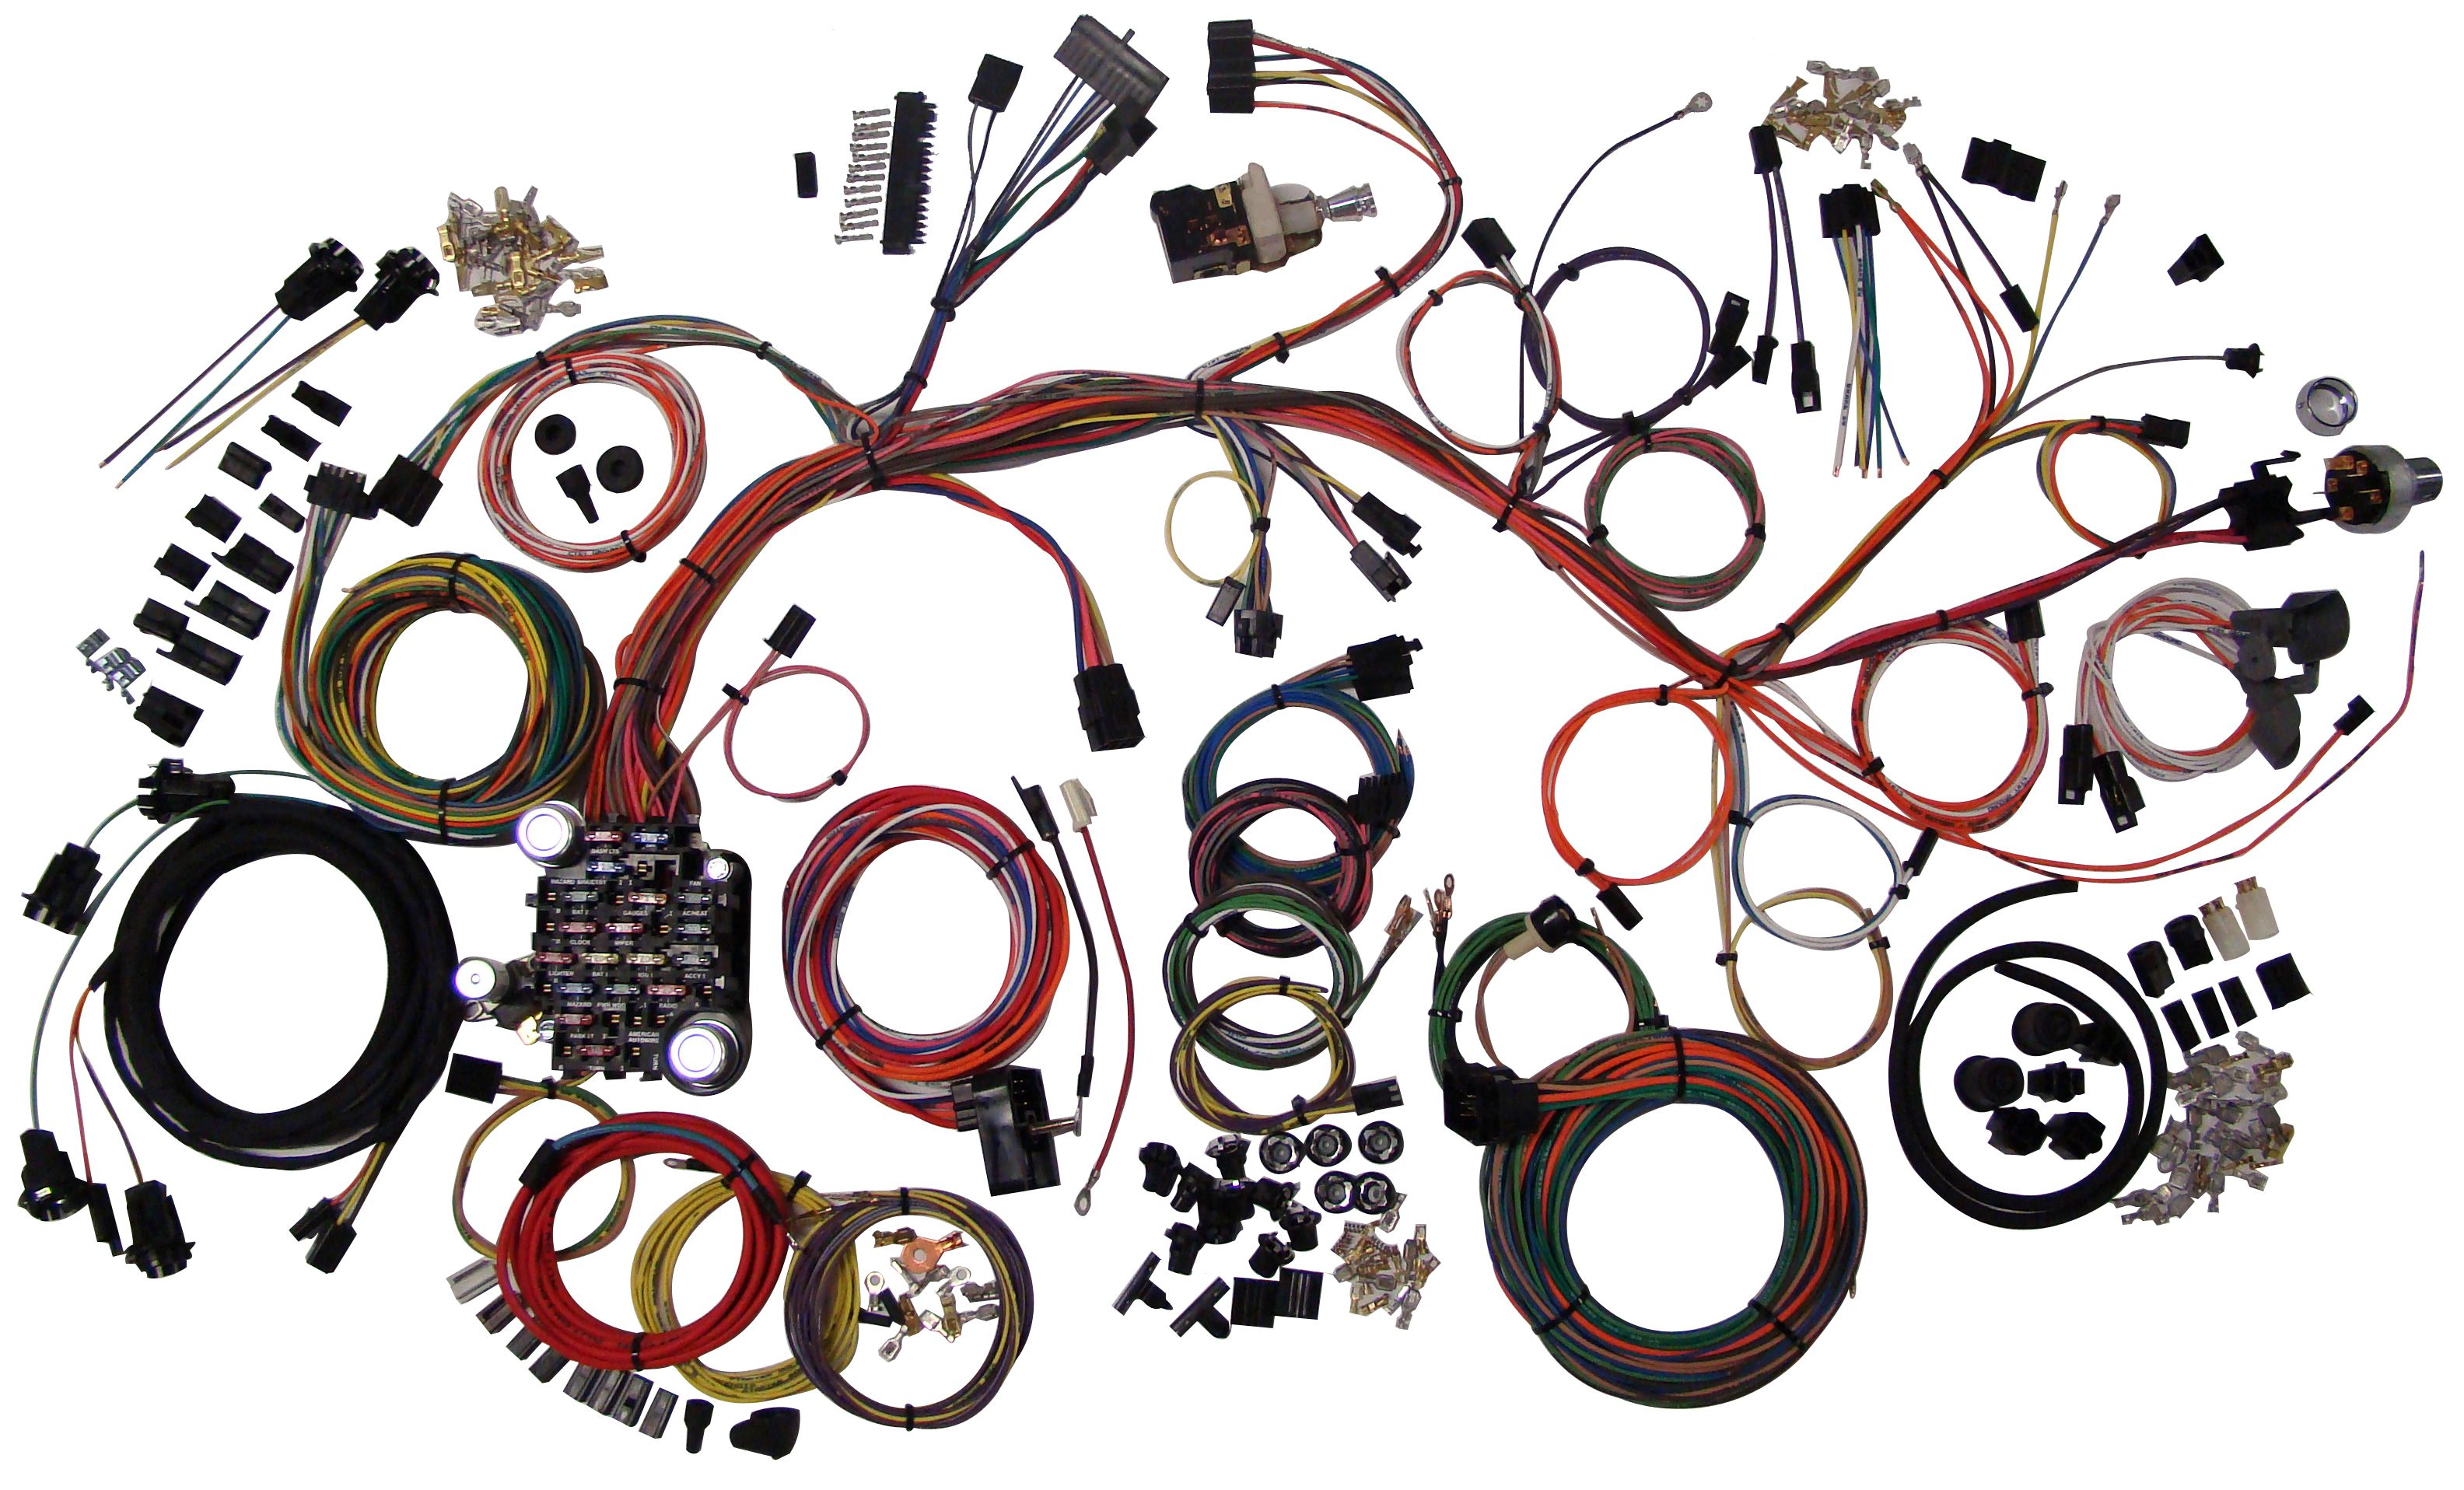 Classic Update Kit - 1961-64 Chevy Impala | American AutowireAmerican Autowire